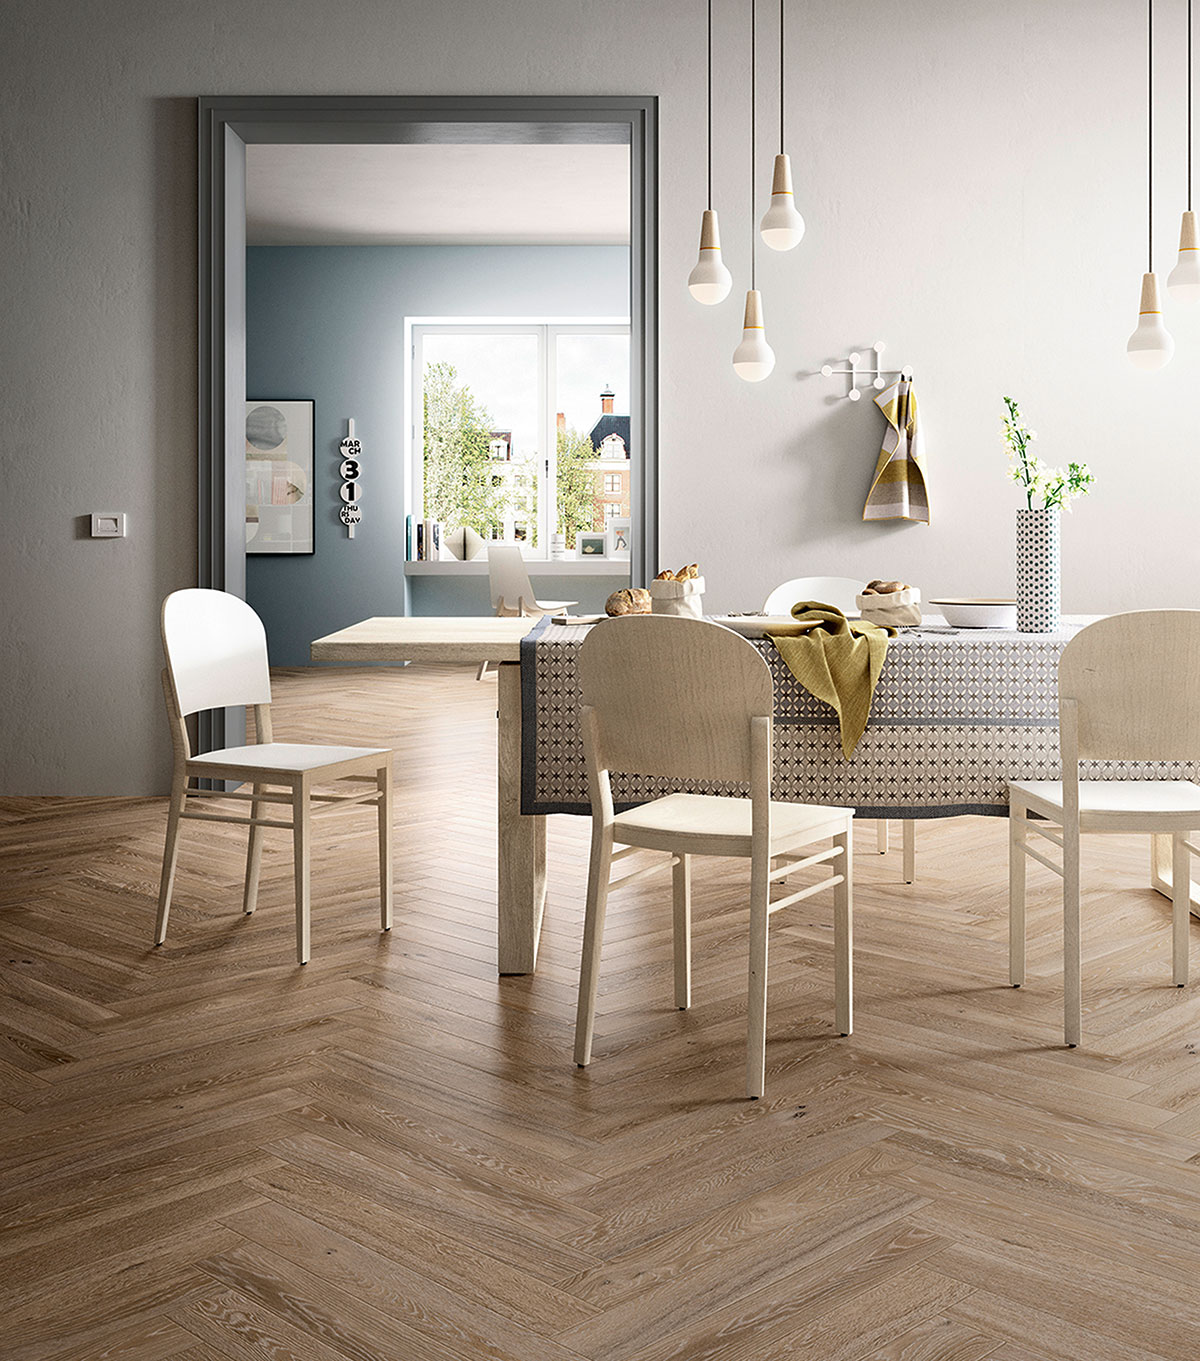 Matte herringbone wood-effect tiles